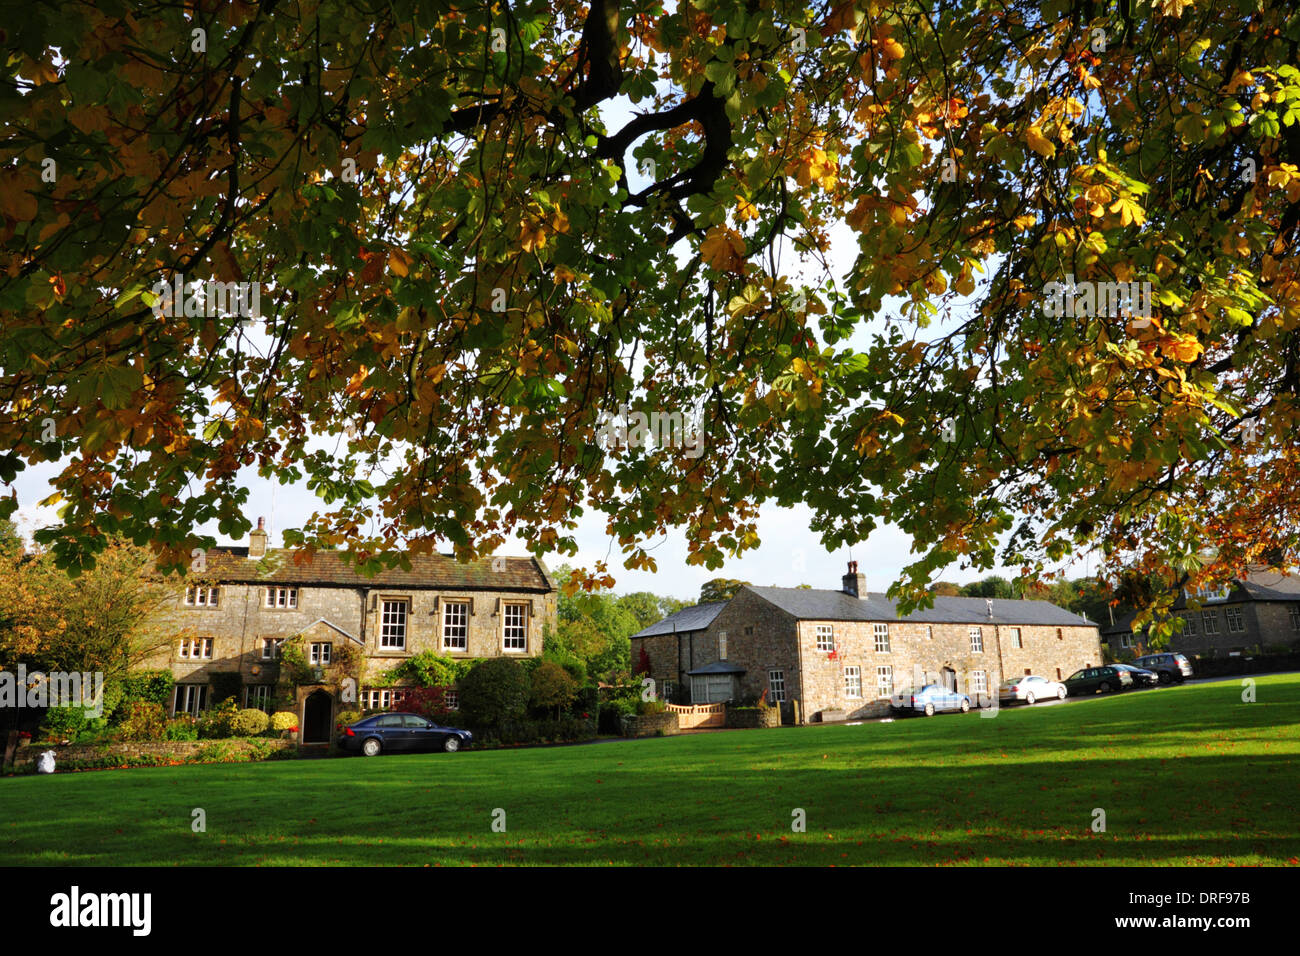 A village green with houses under a canopy of branches with autumn colours. - Stock Image